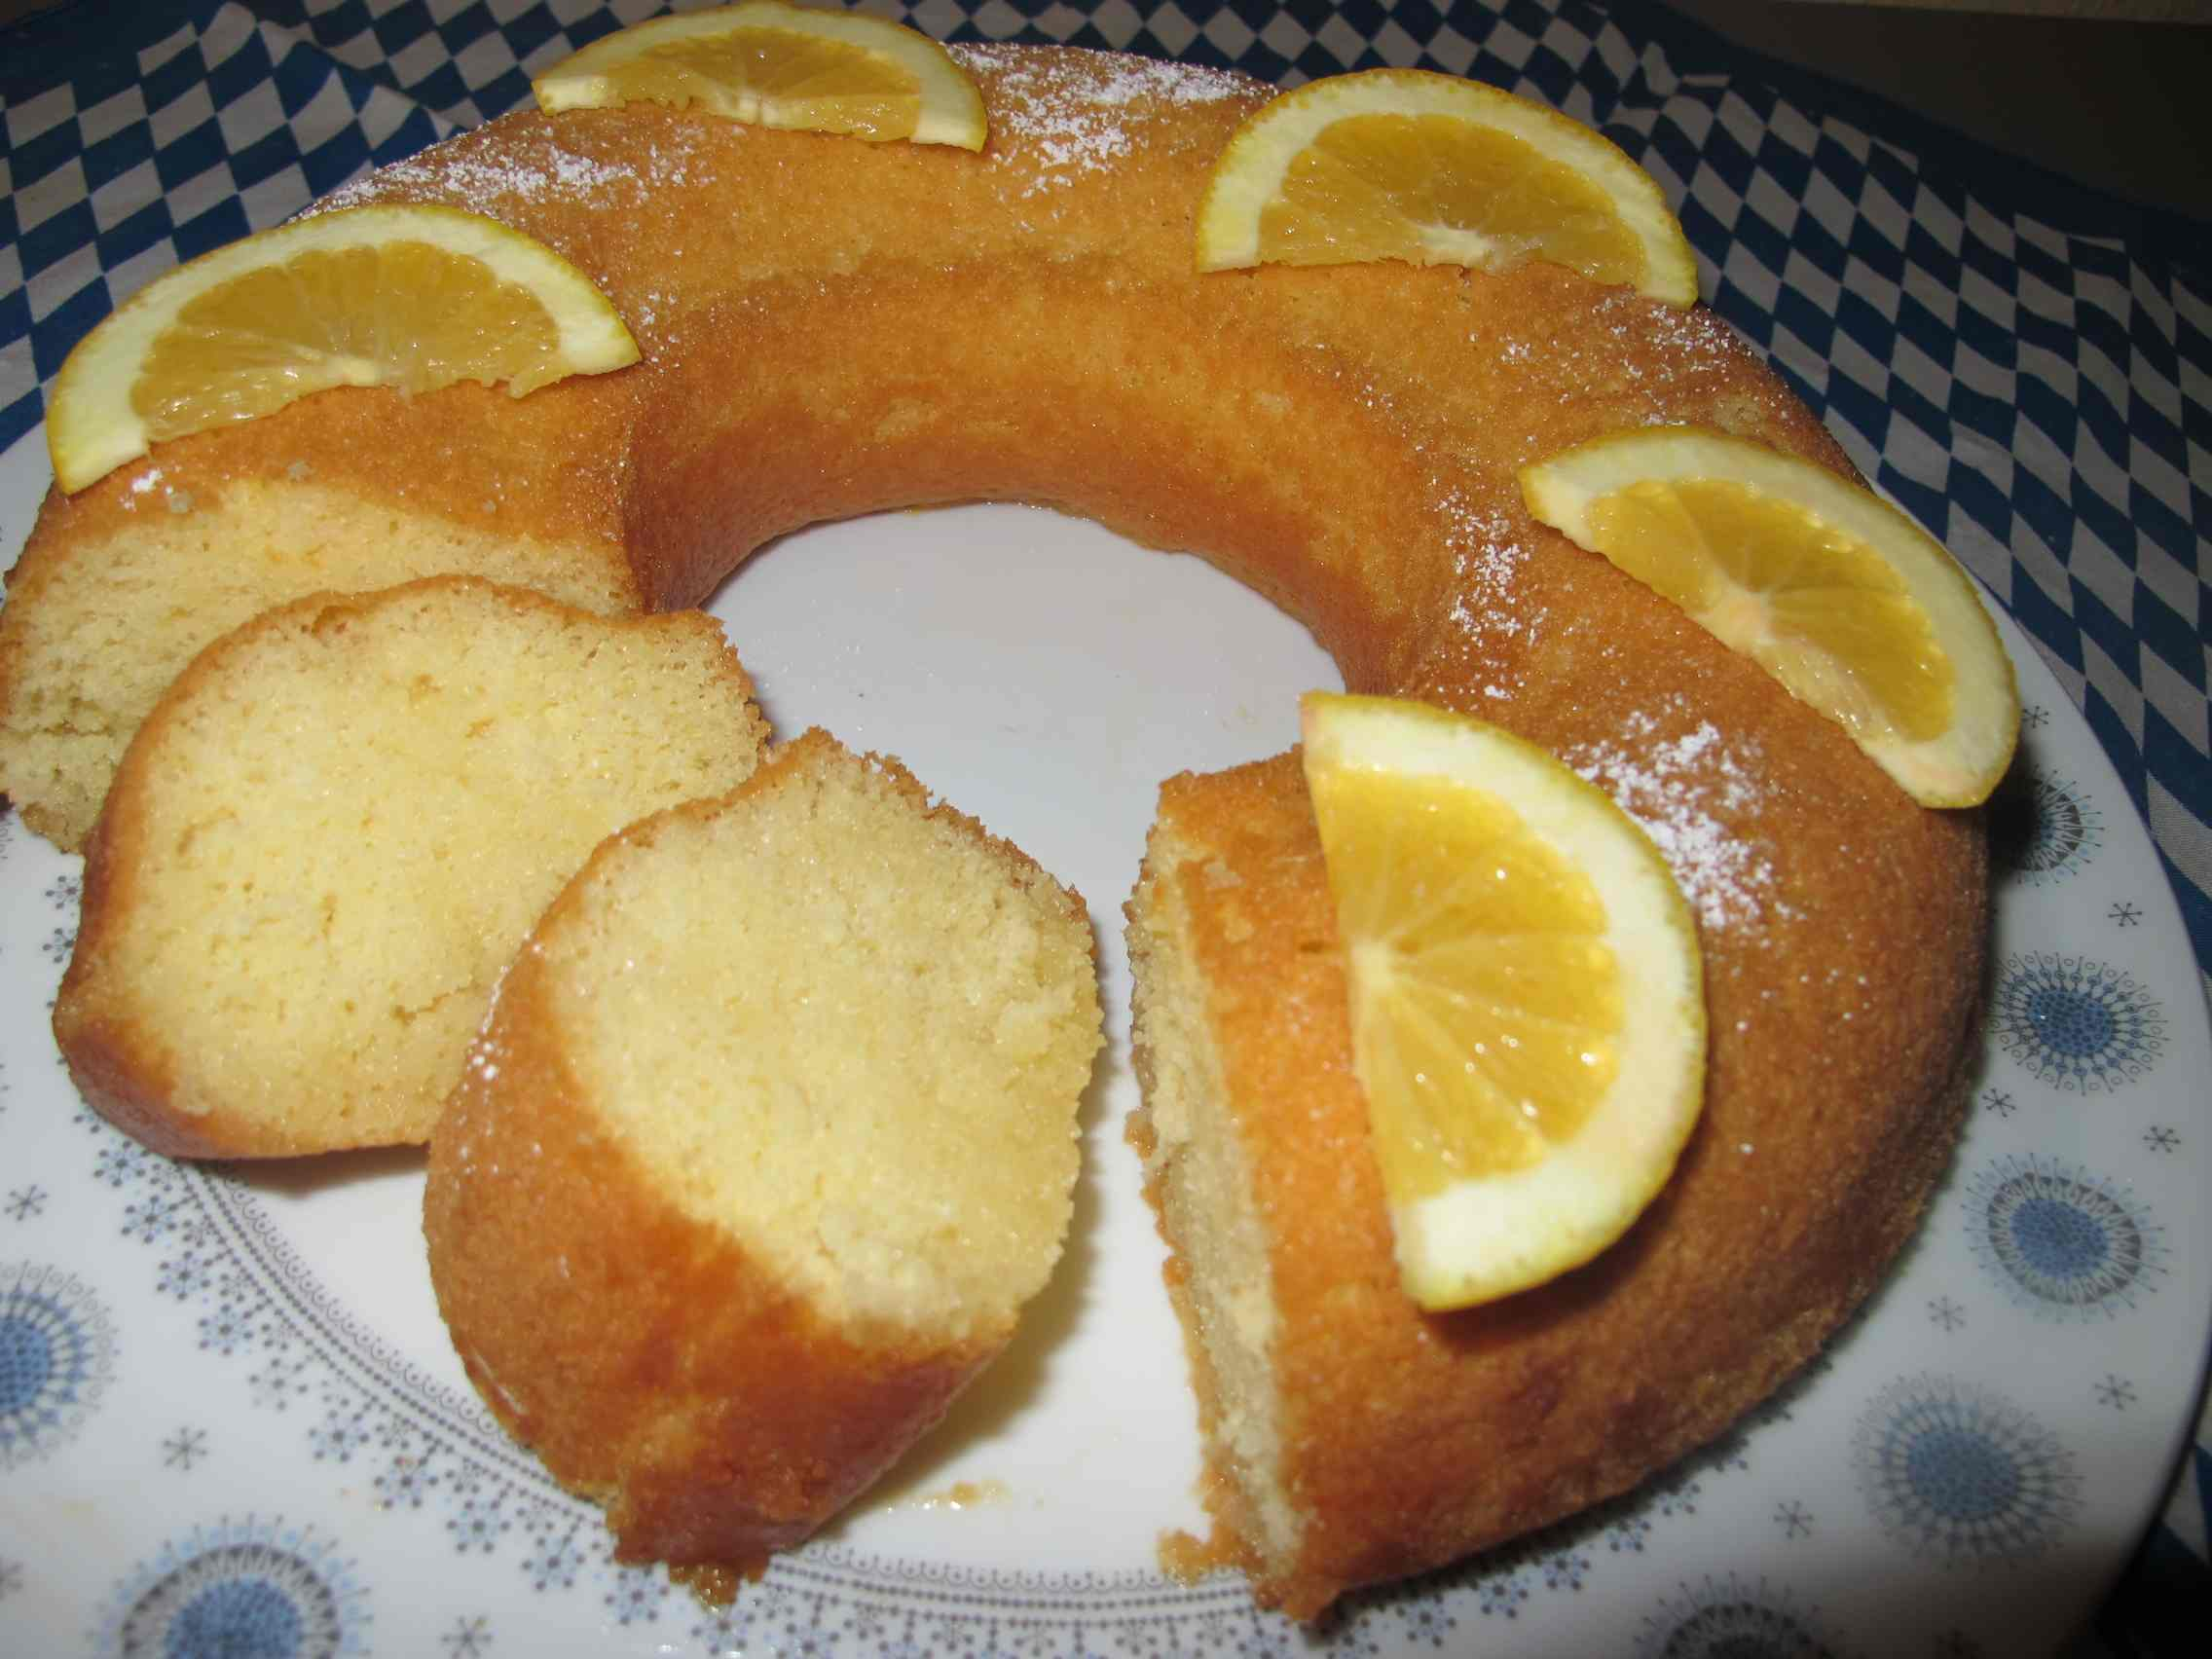 Orange-Rum Cake | ingeskitchen.com